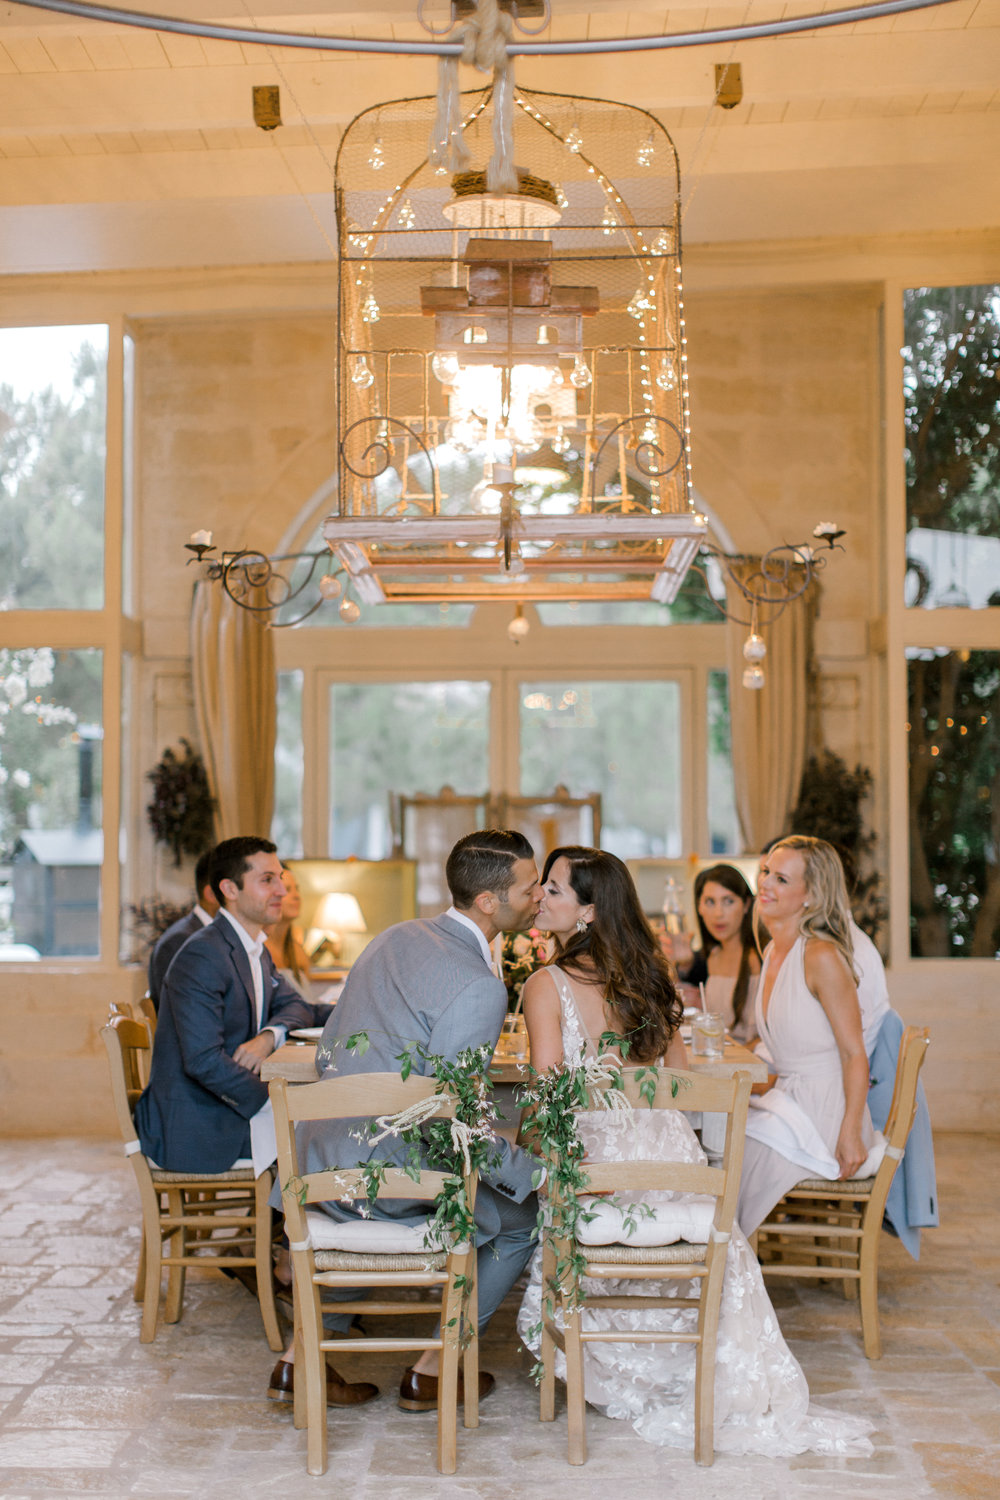 Puglia, Italy wedding by Meggie Francisco Events - Photographed by Tracy Enoch, Video by Innar Hunt, floral by Chiara Sperti. Venue: Masseria Montenapoleone.